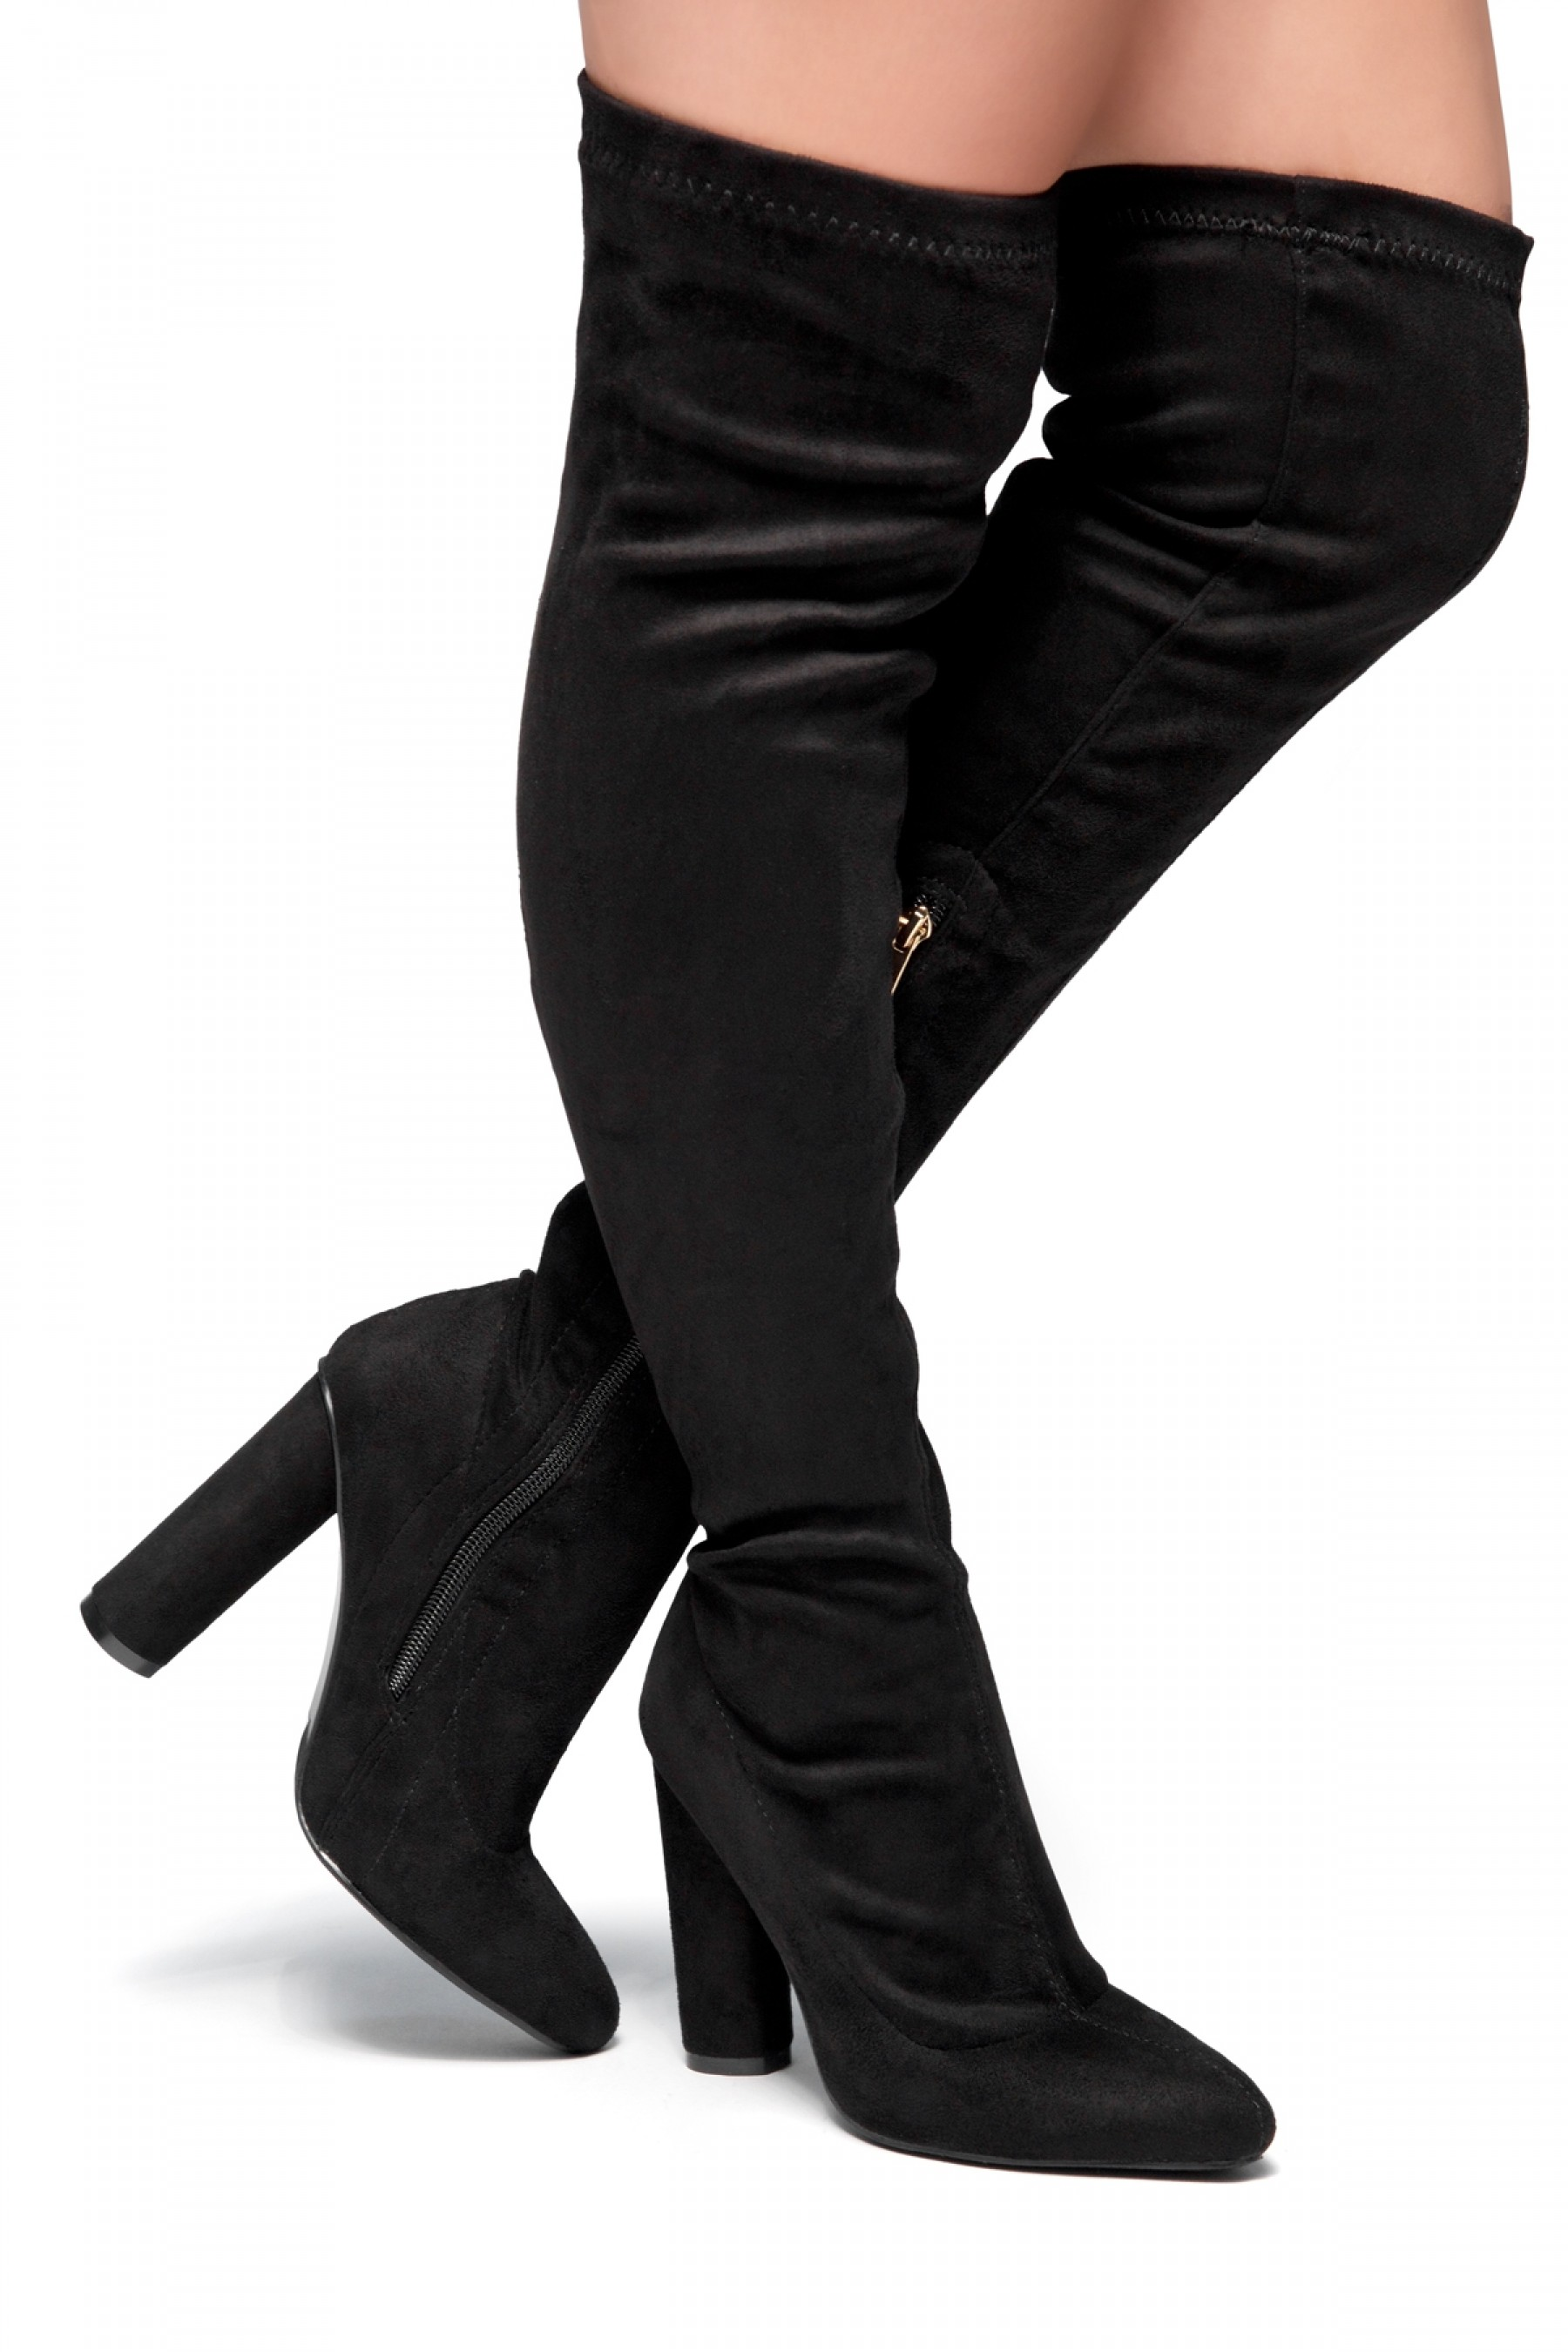 HerStyle Klaraa Pointy Toe Over-The-Knee Thigh-hi Boots, chunky heel - black